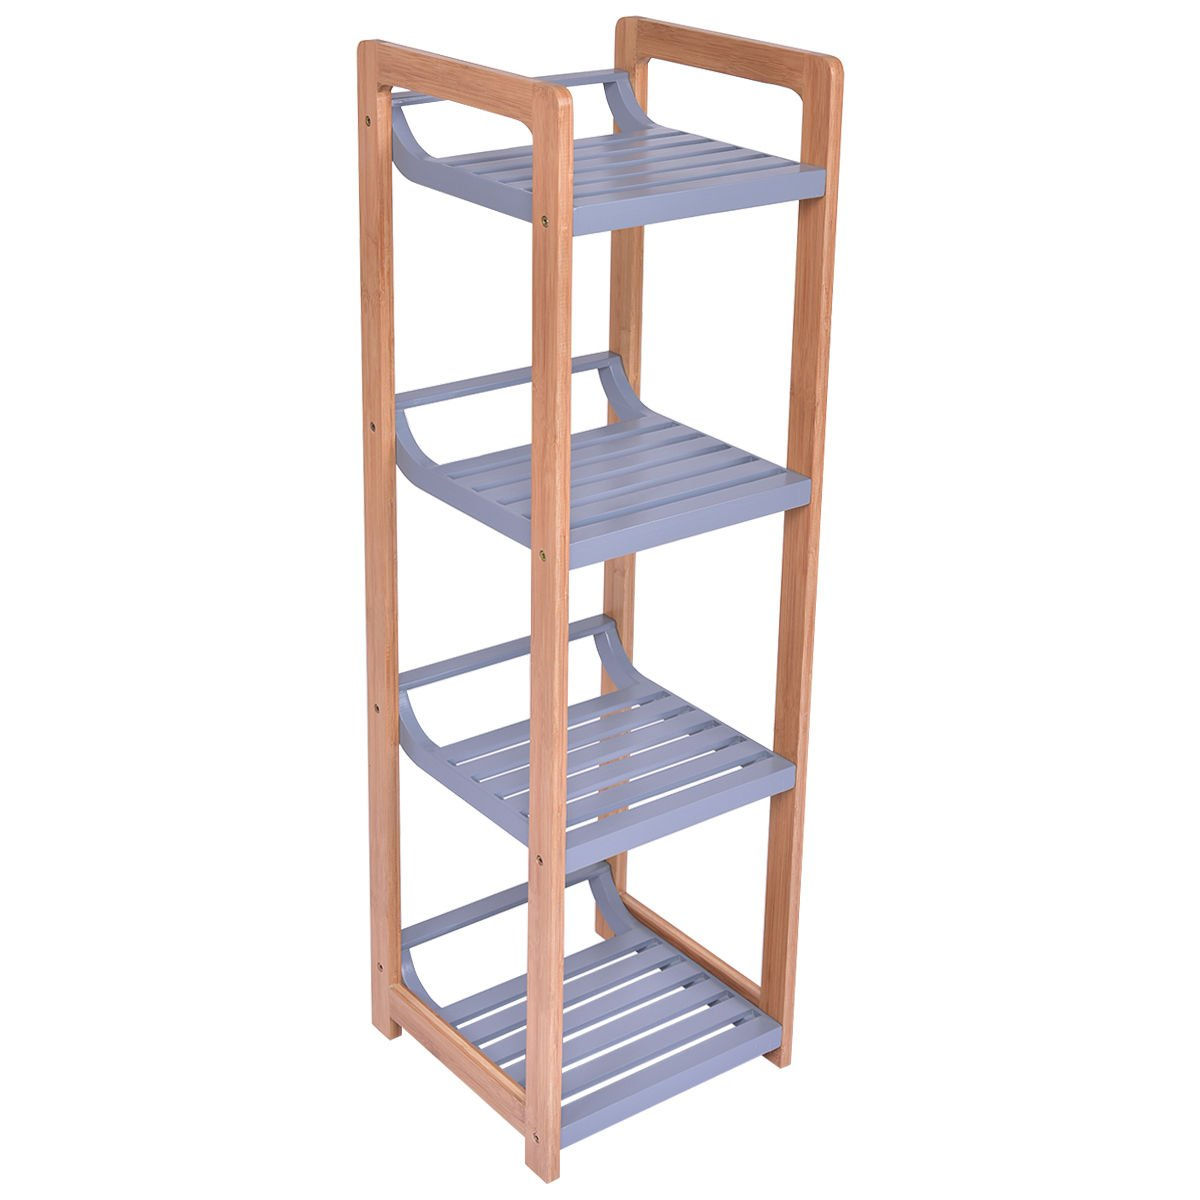 totoshop Multifunction Storage Tower Rack Shelving Shelf Units Stand Bamboo New 4 Tier by totoshop (Image #3)